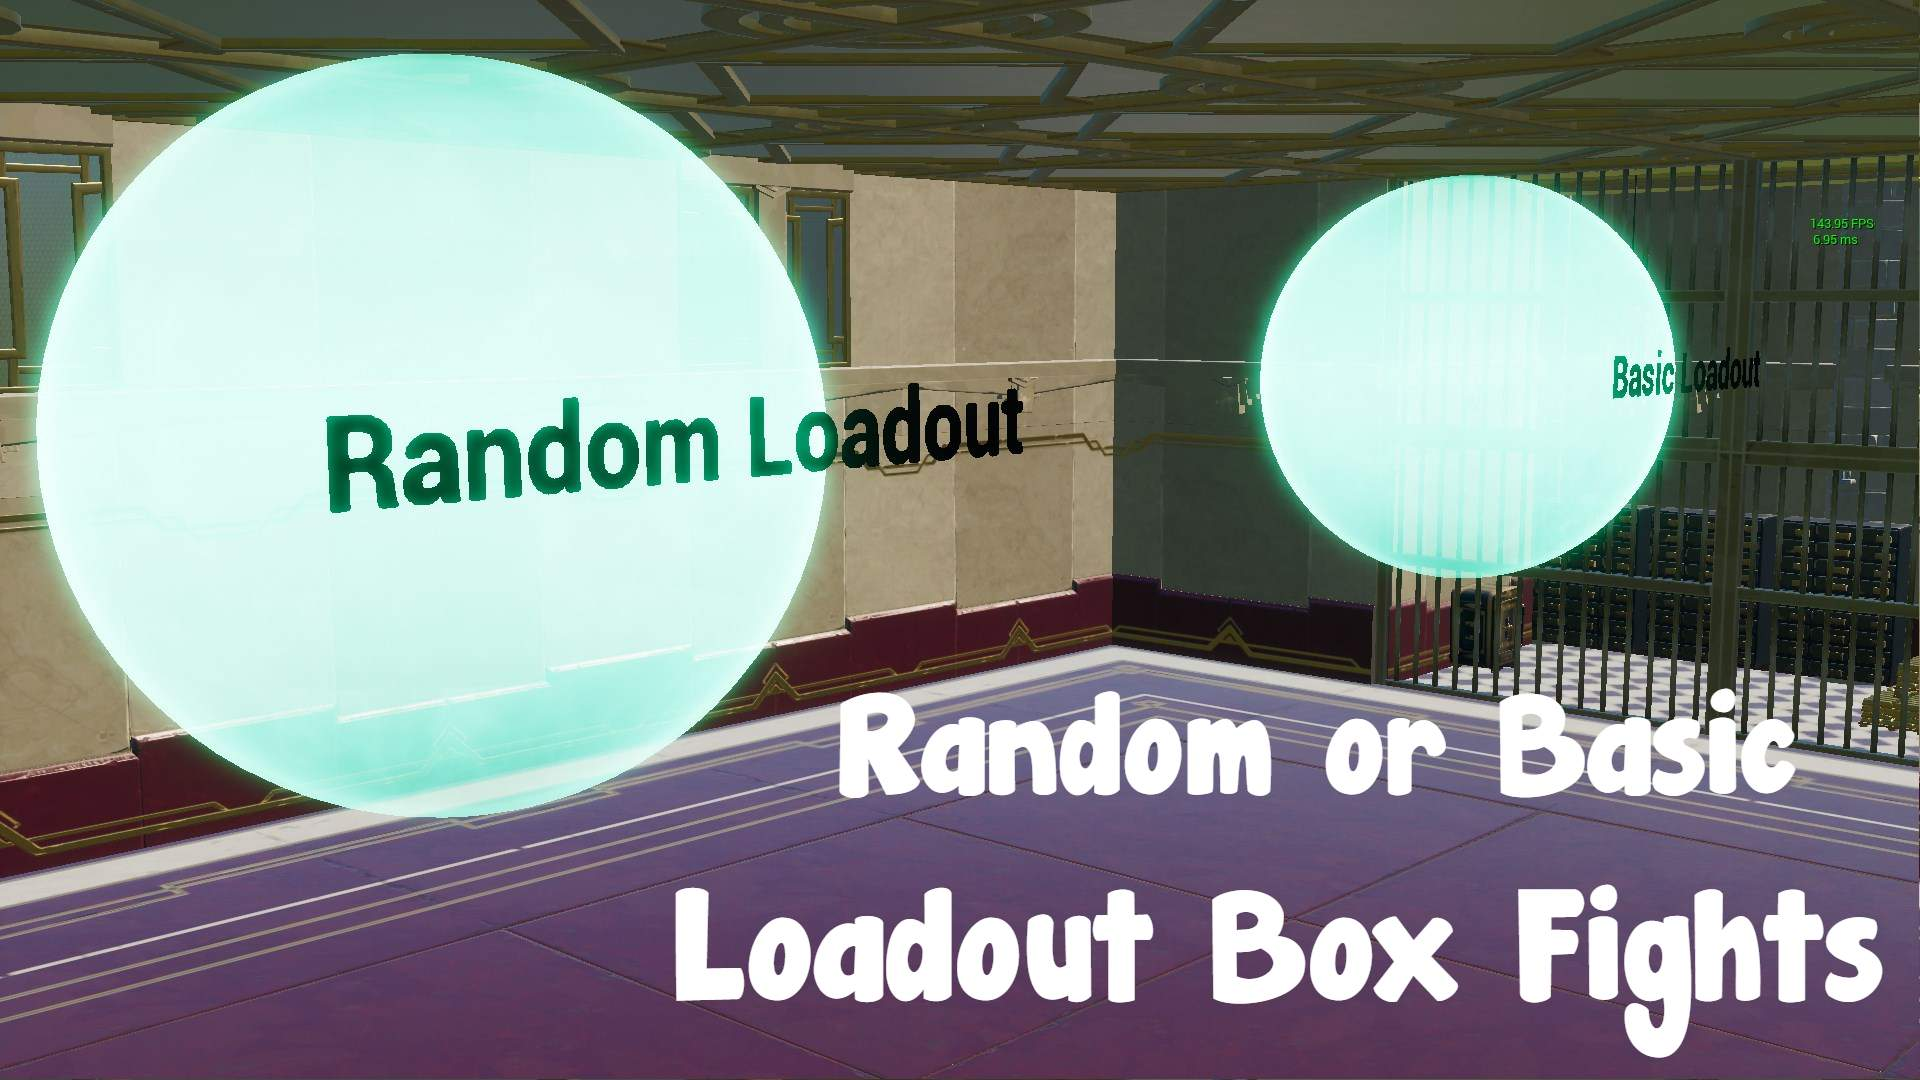 RANDOM OR BASIC LOADOUT BOX FIGHTS